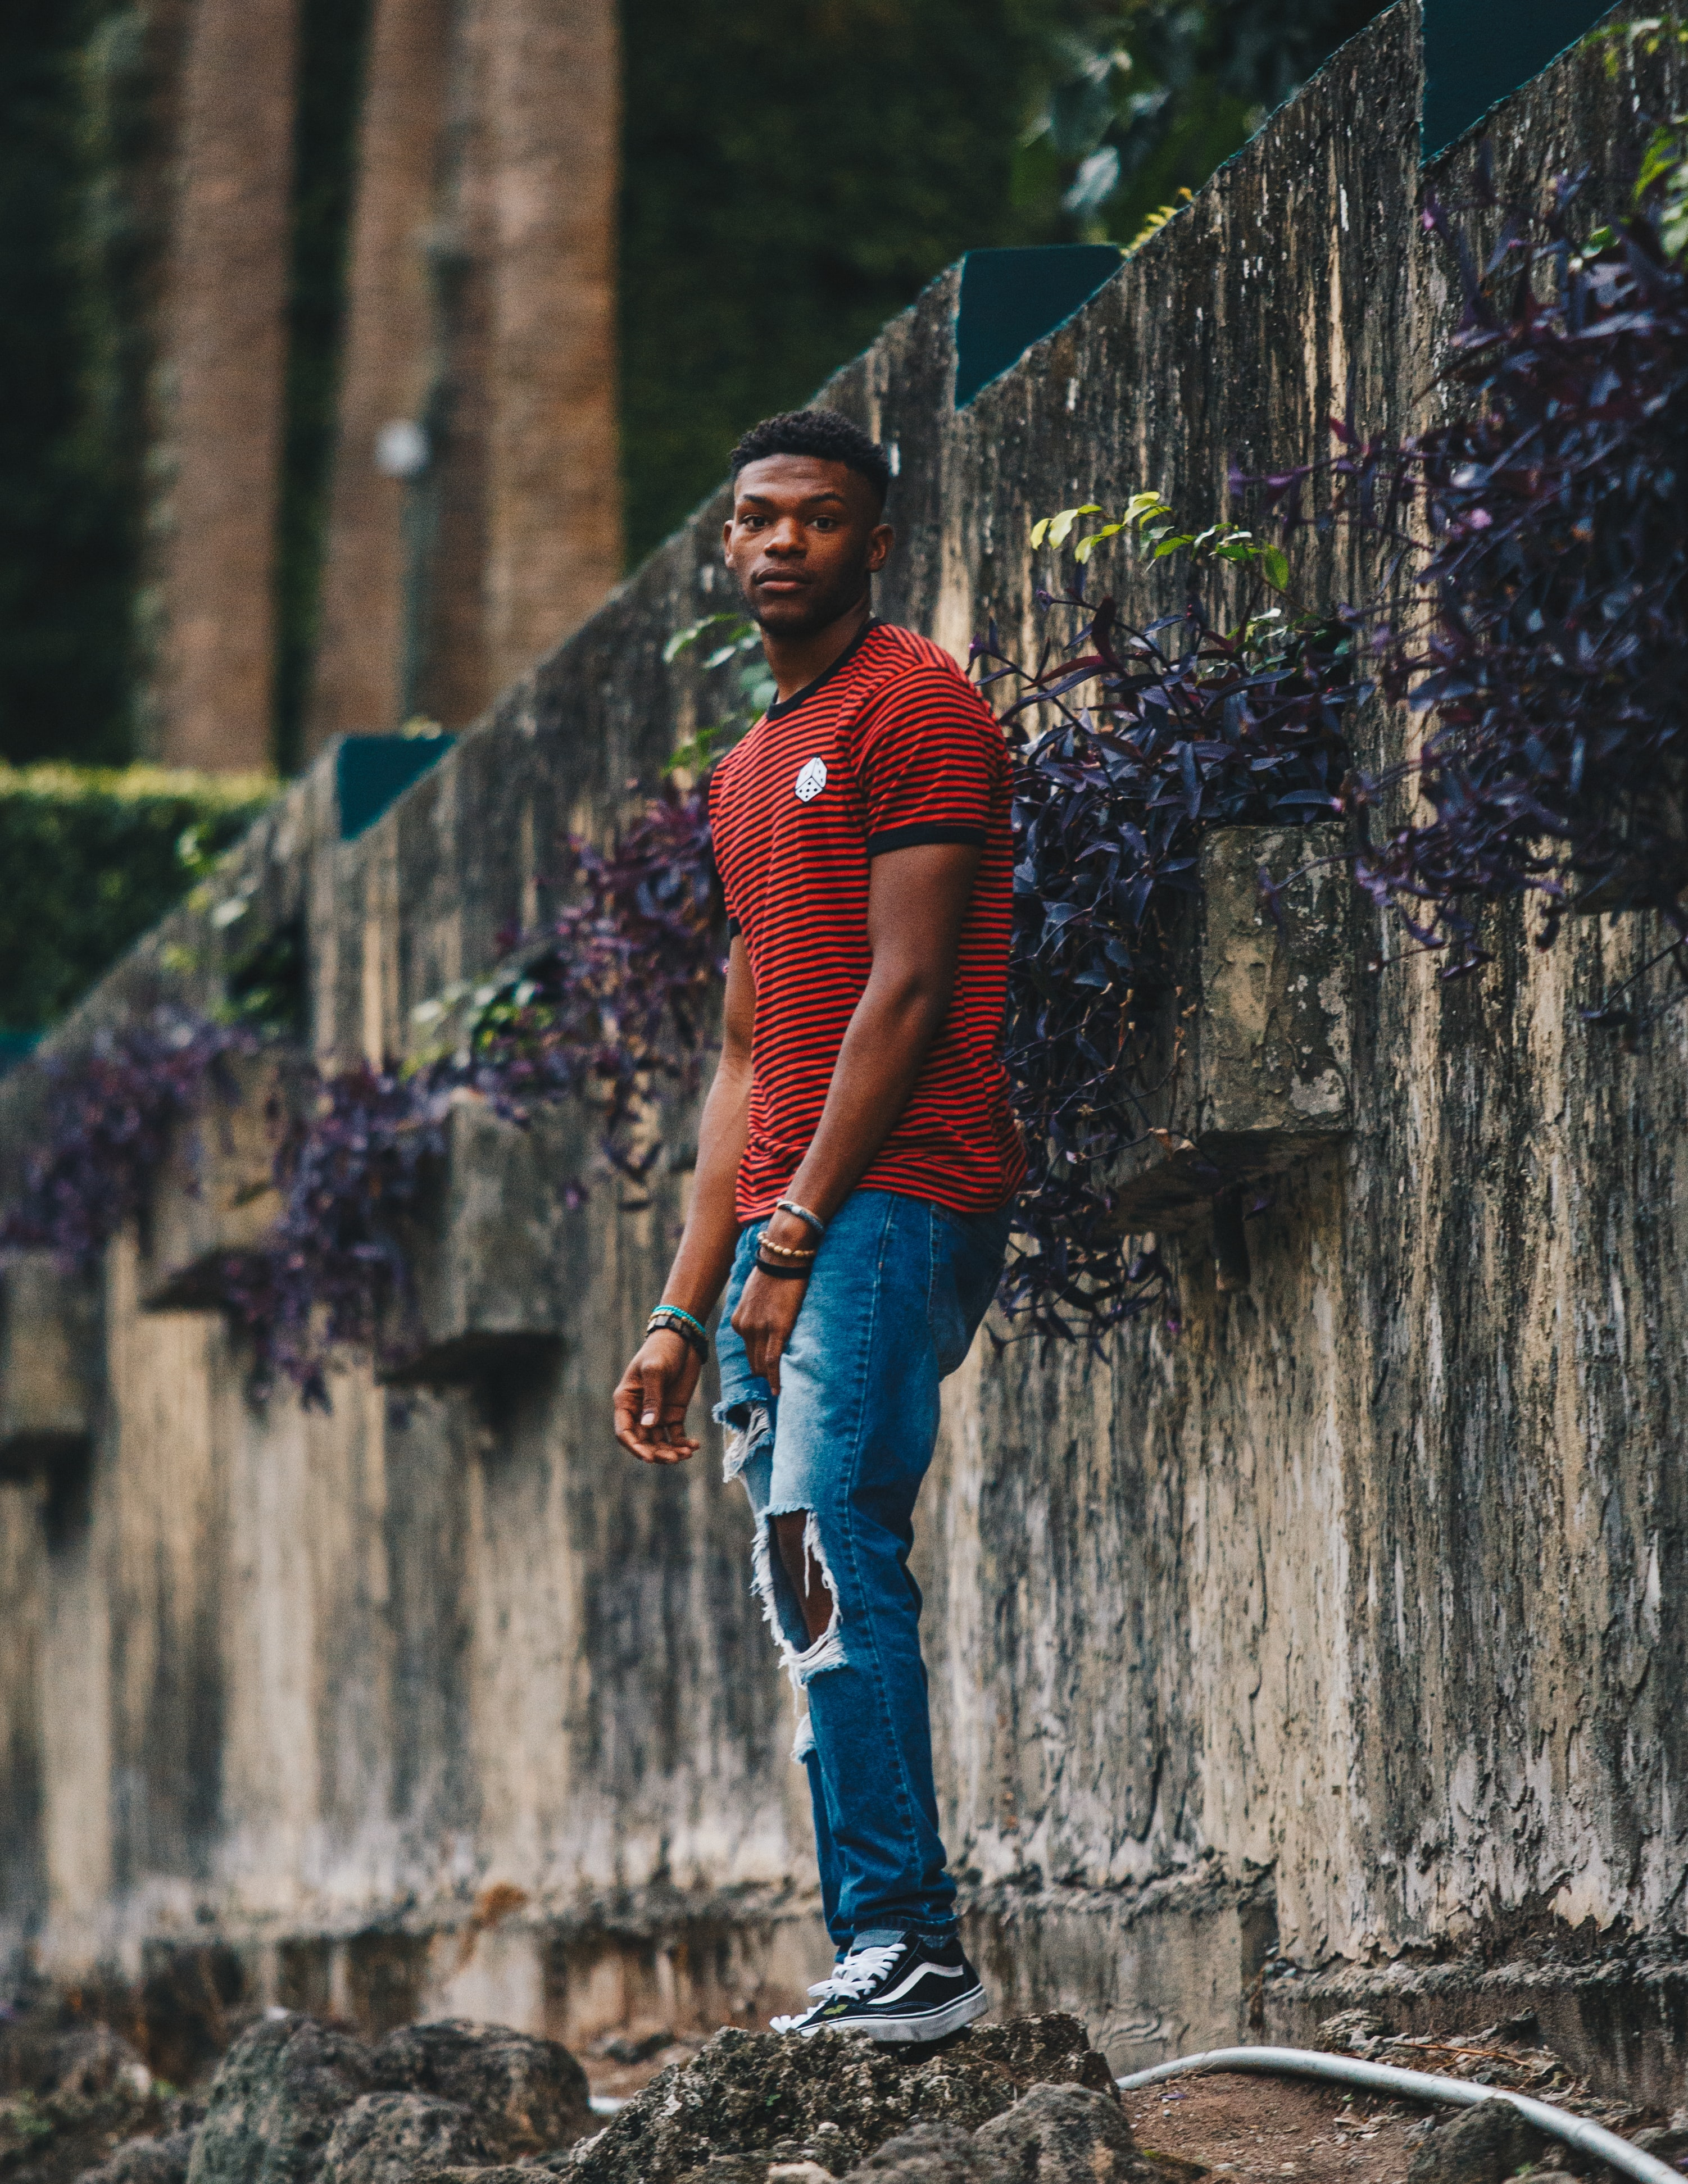 An African American man in ripped jeans and a red striped shirt.